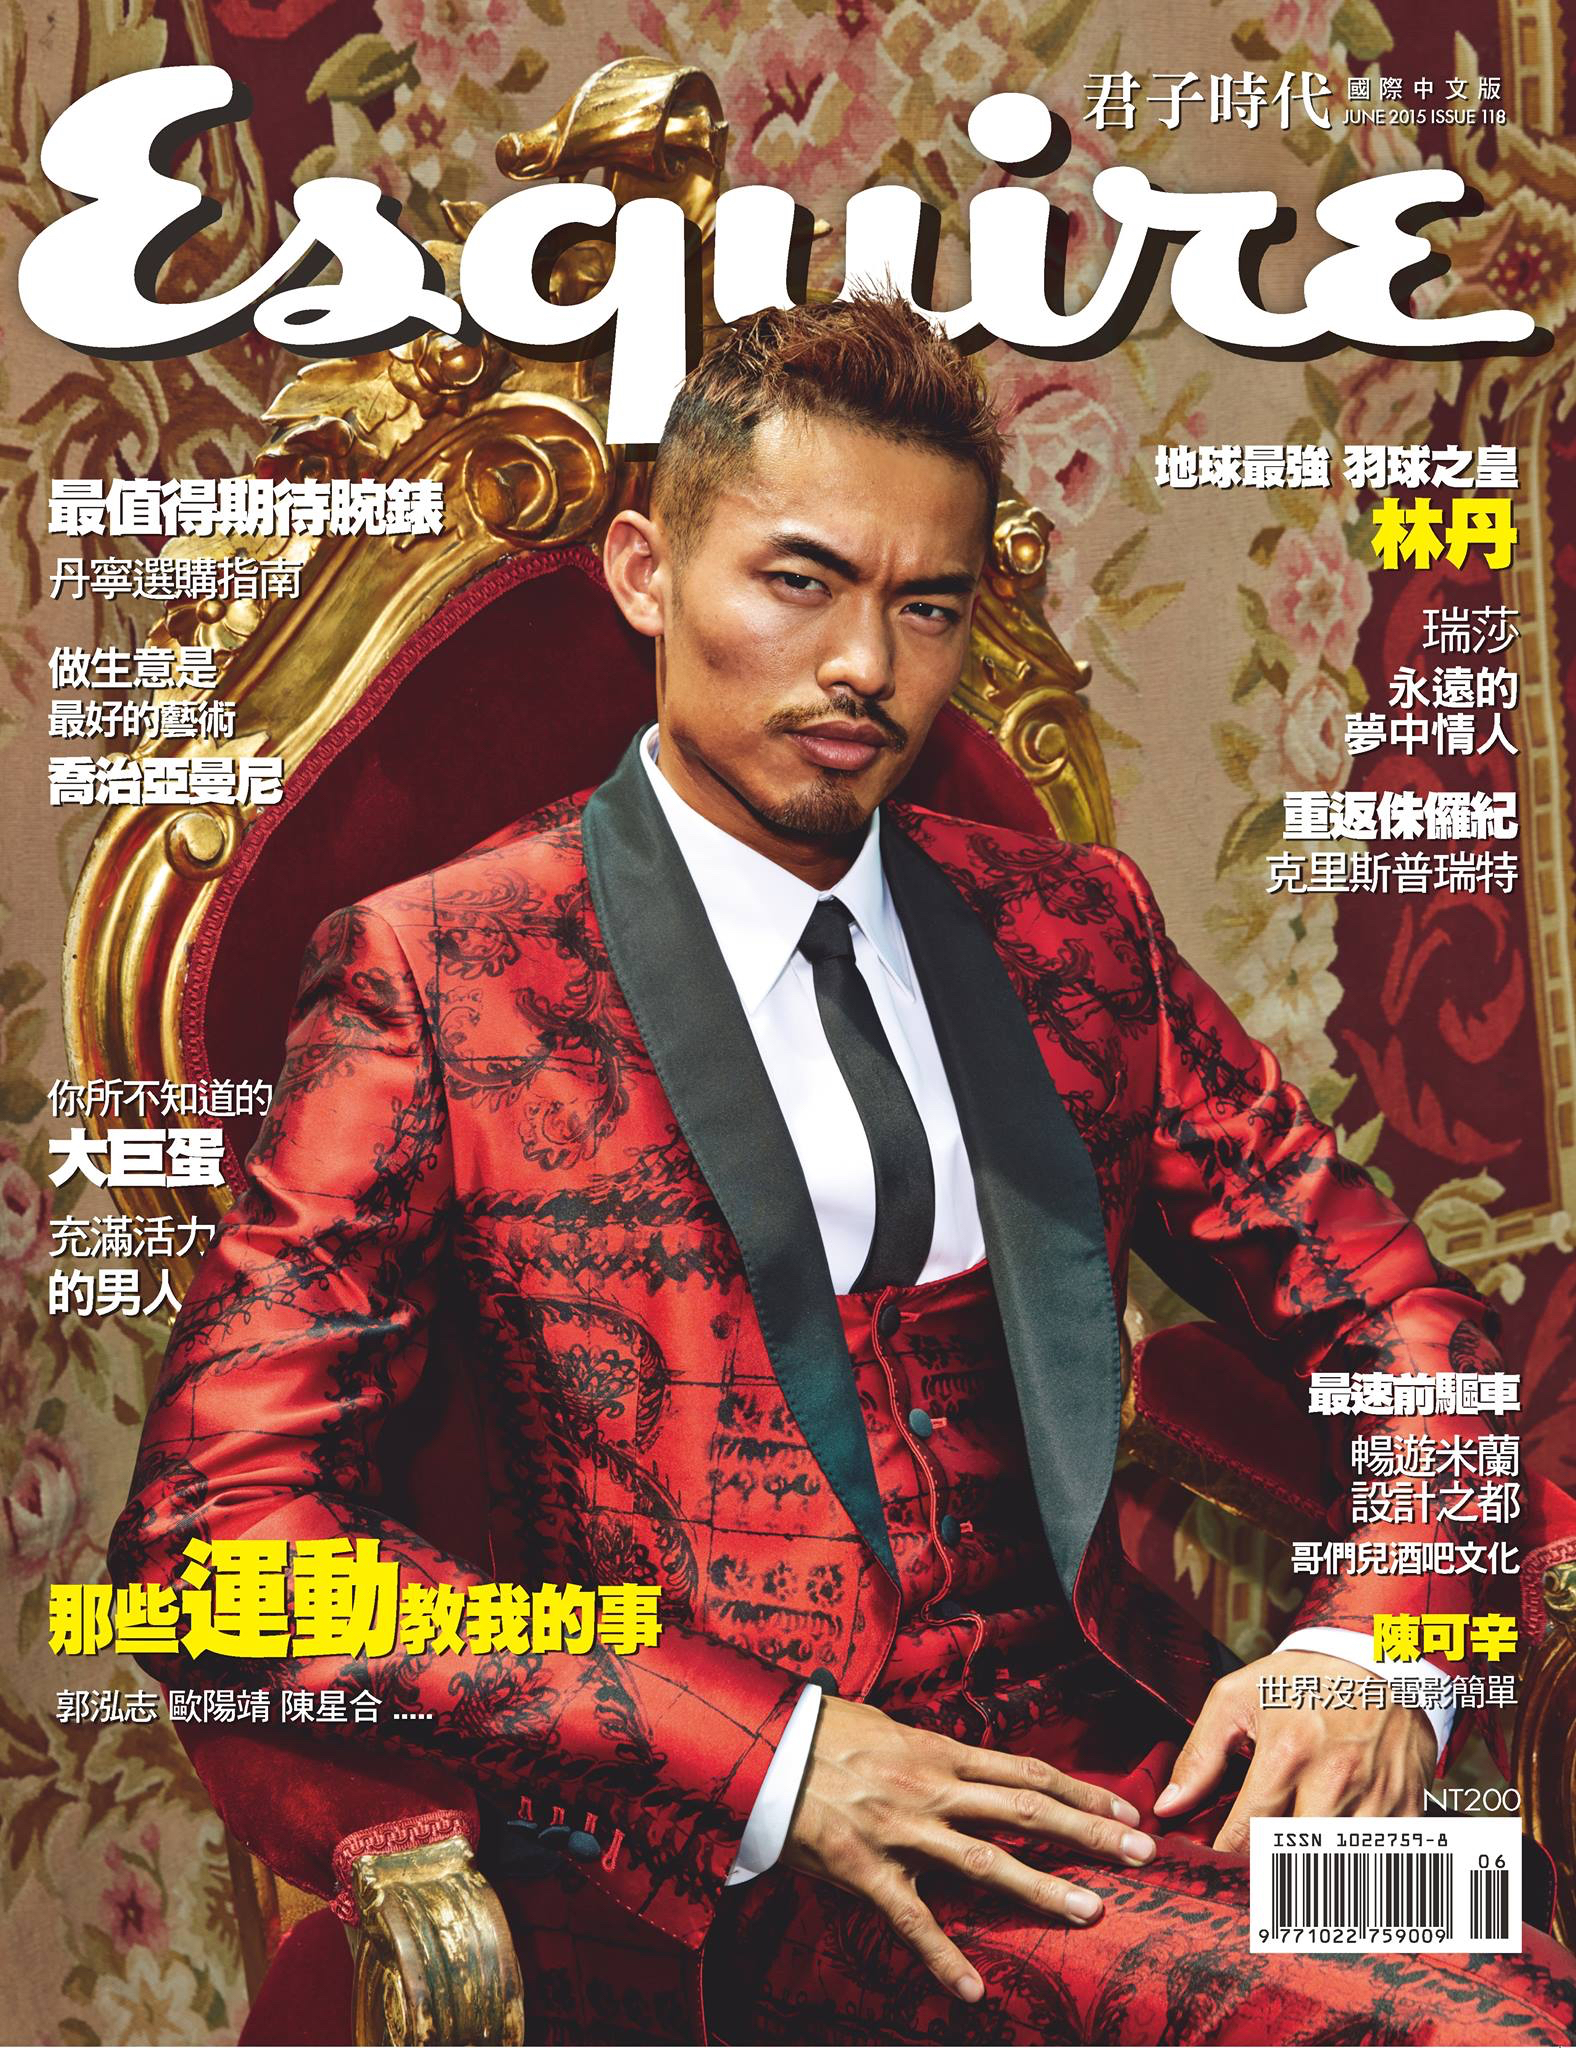 Lin Dan Dons Dolce & Gabbana for Esquire Taiwan June 2015 Cover Shoot